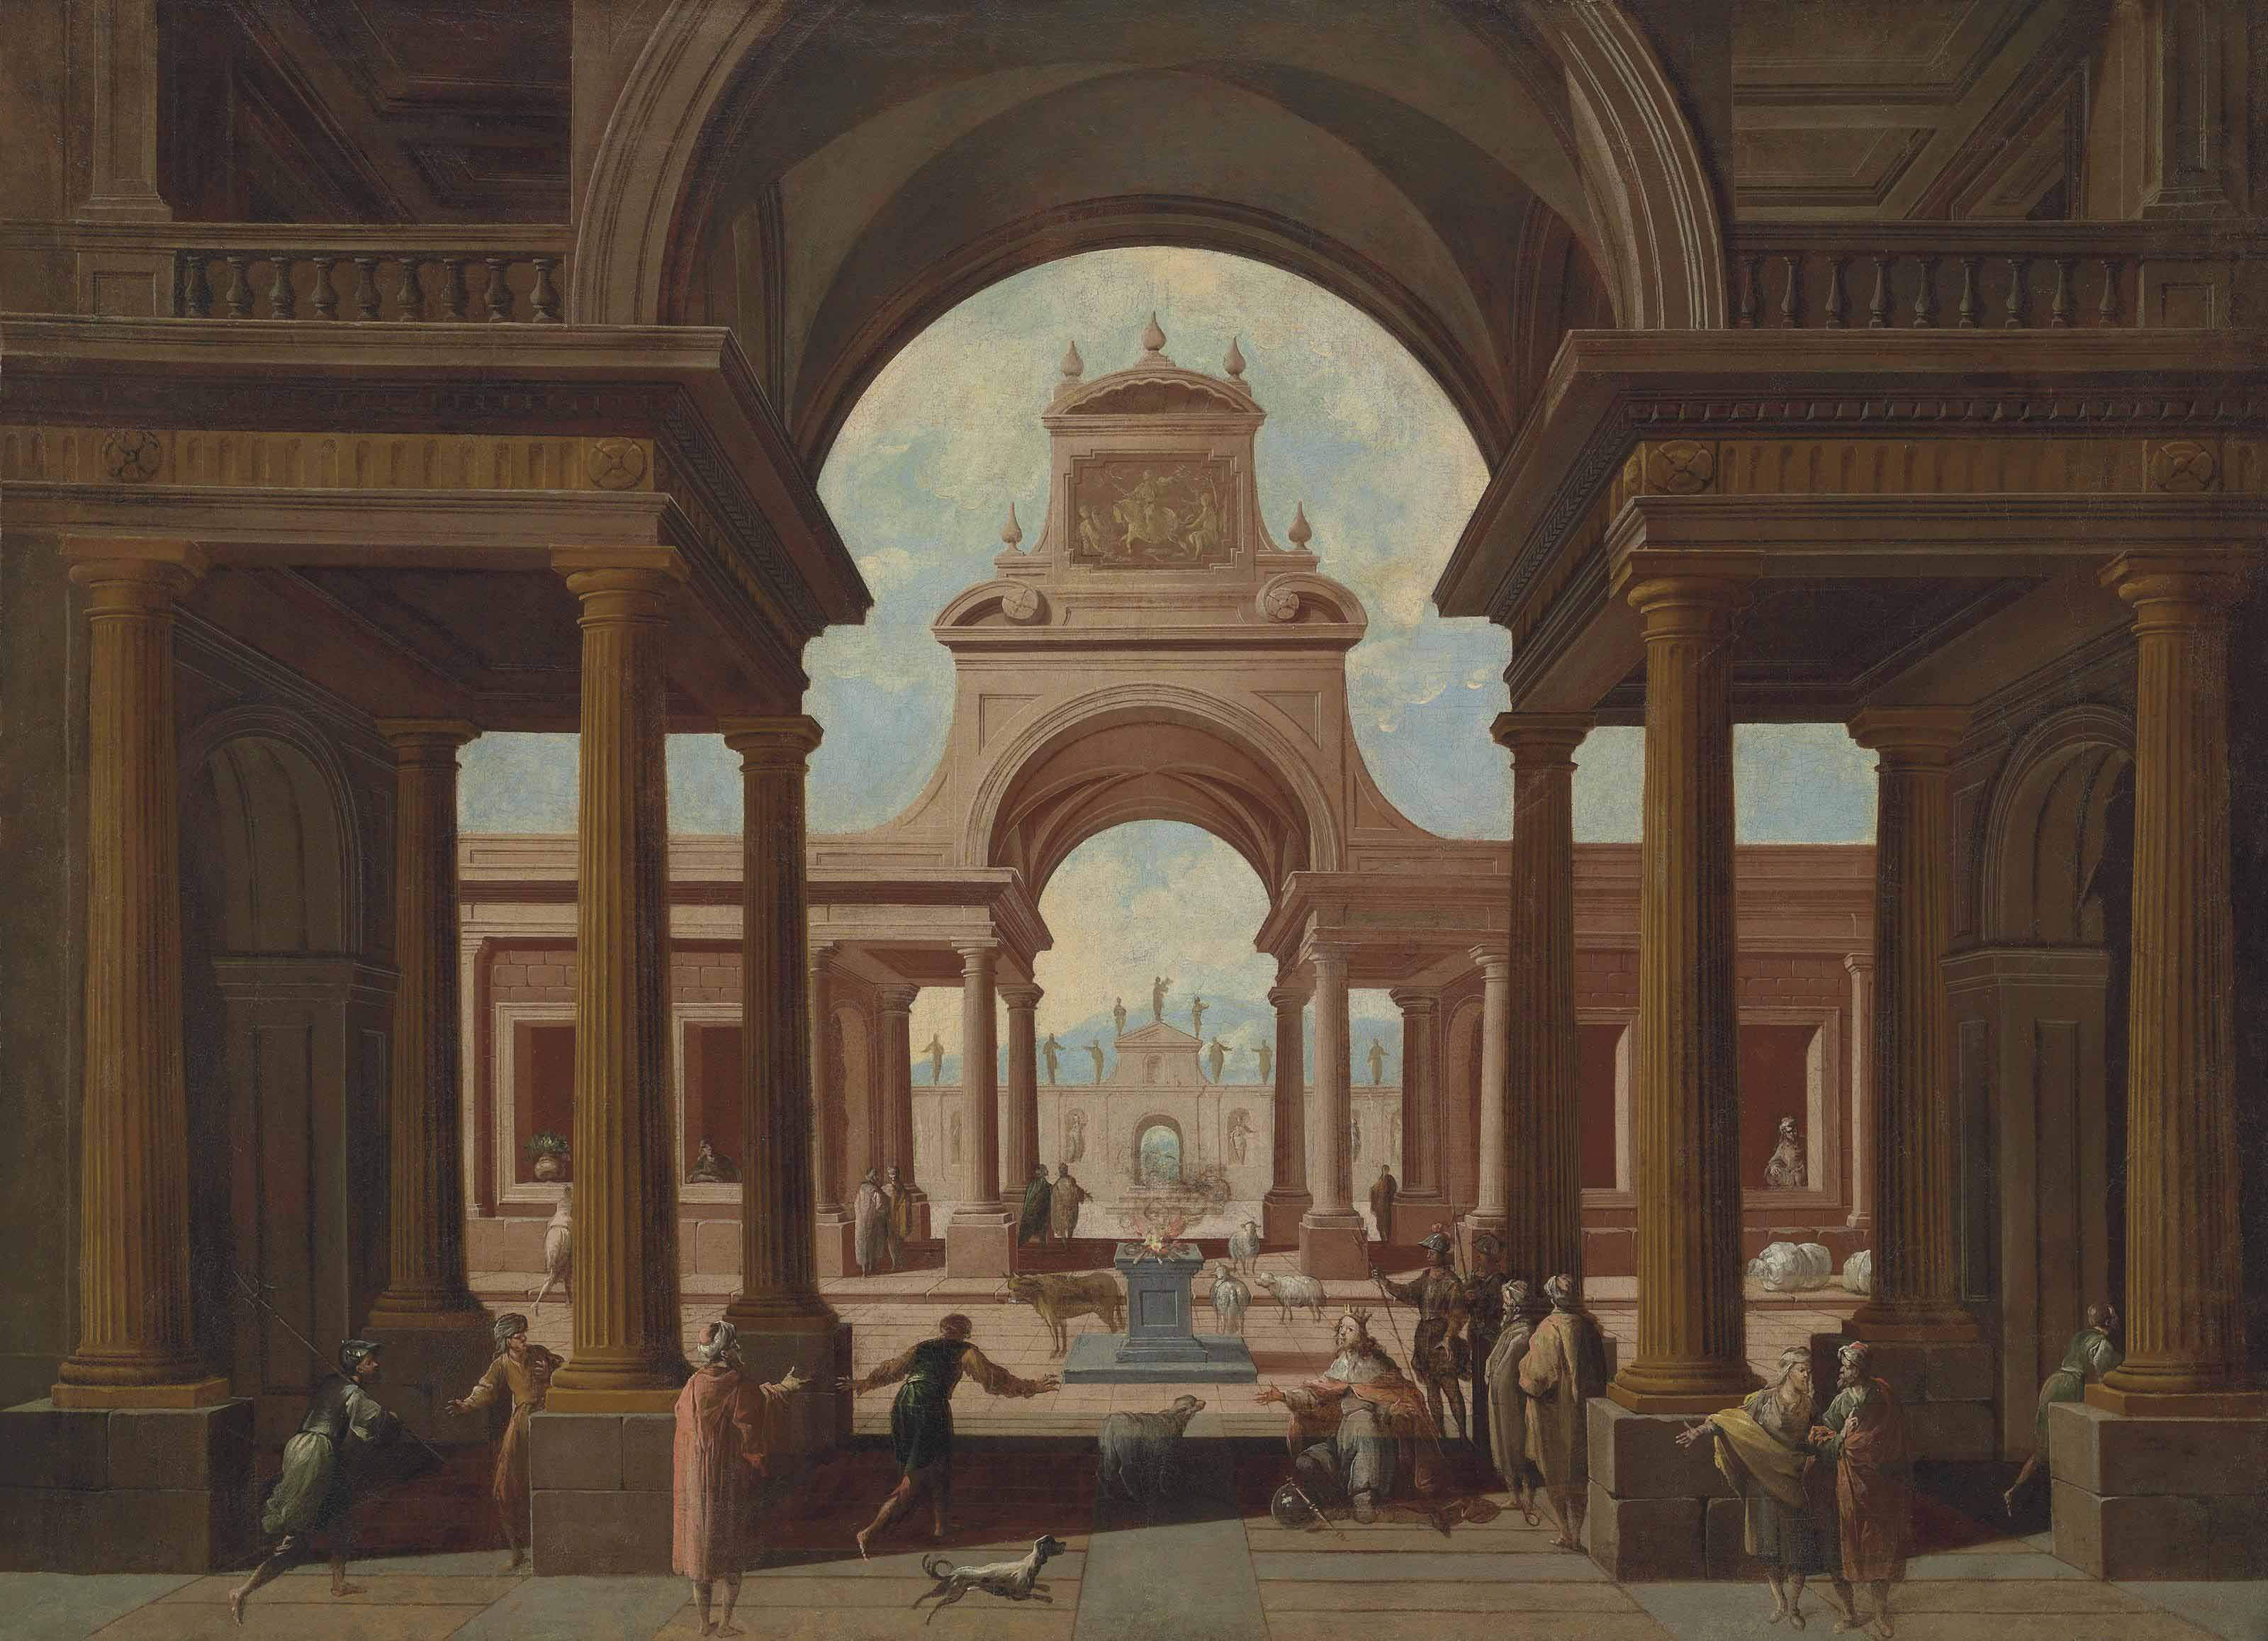 An architectural capriccio with a king kneeling and other figures conversing in the foreground before a pagan sacrifice with animals